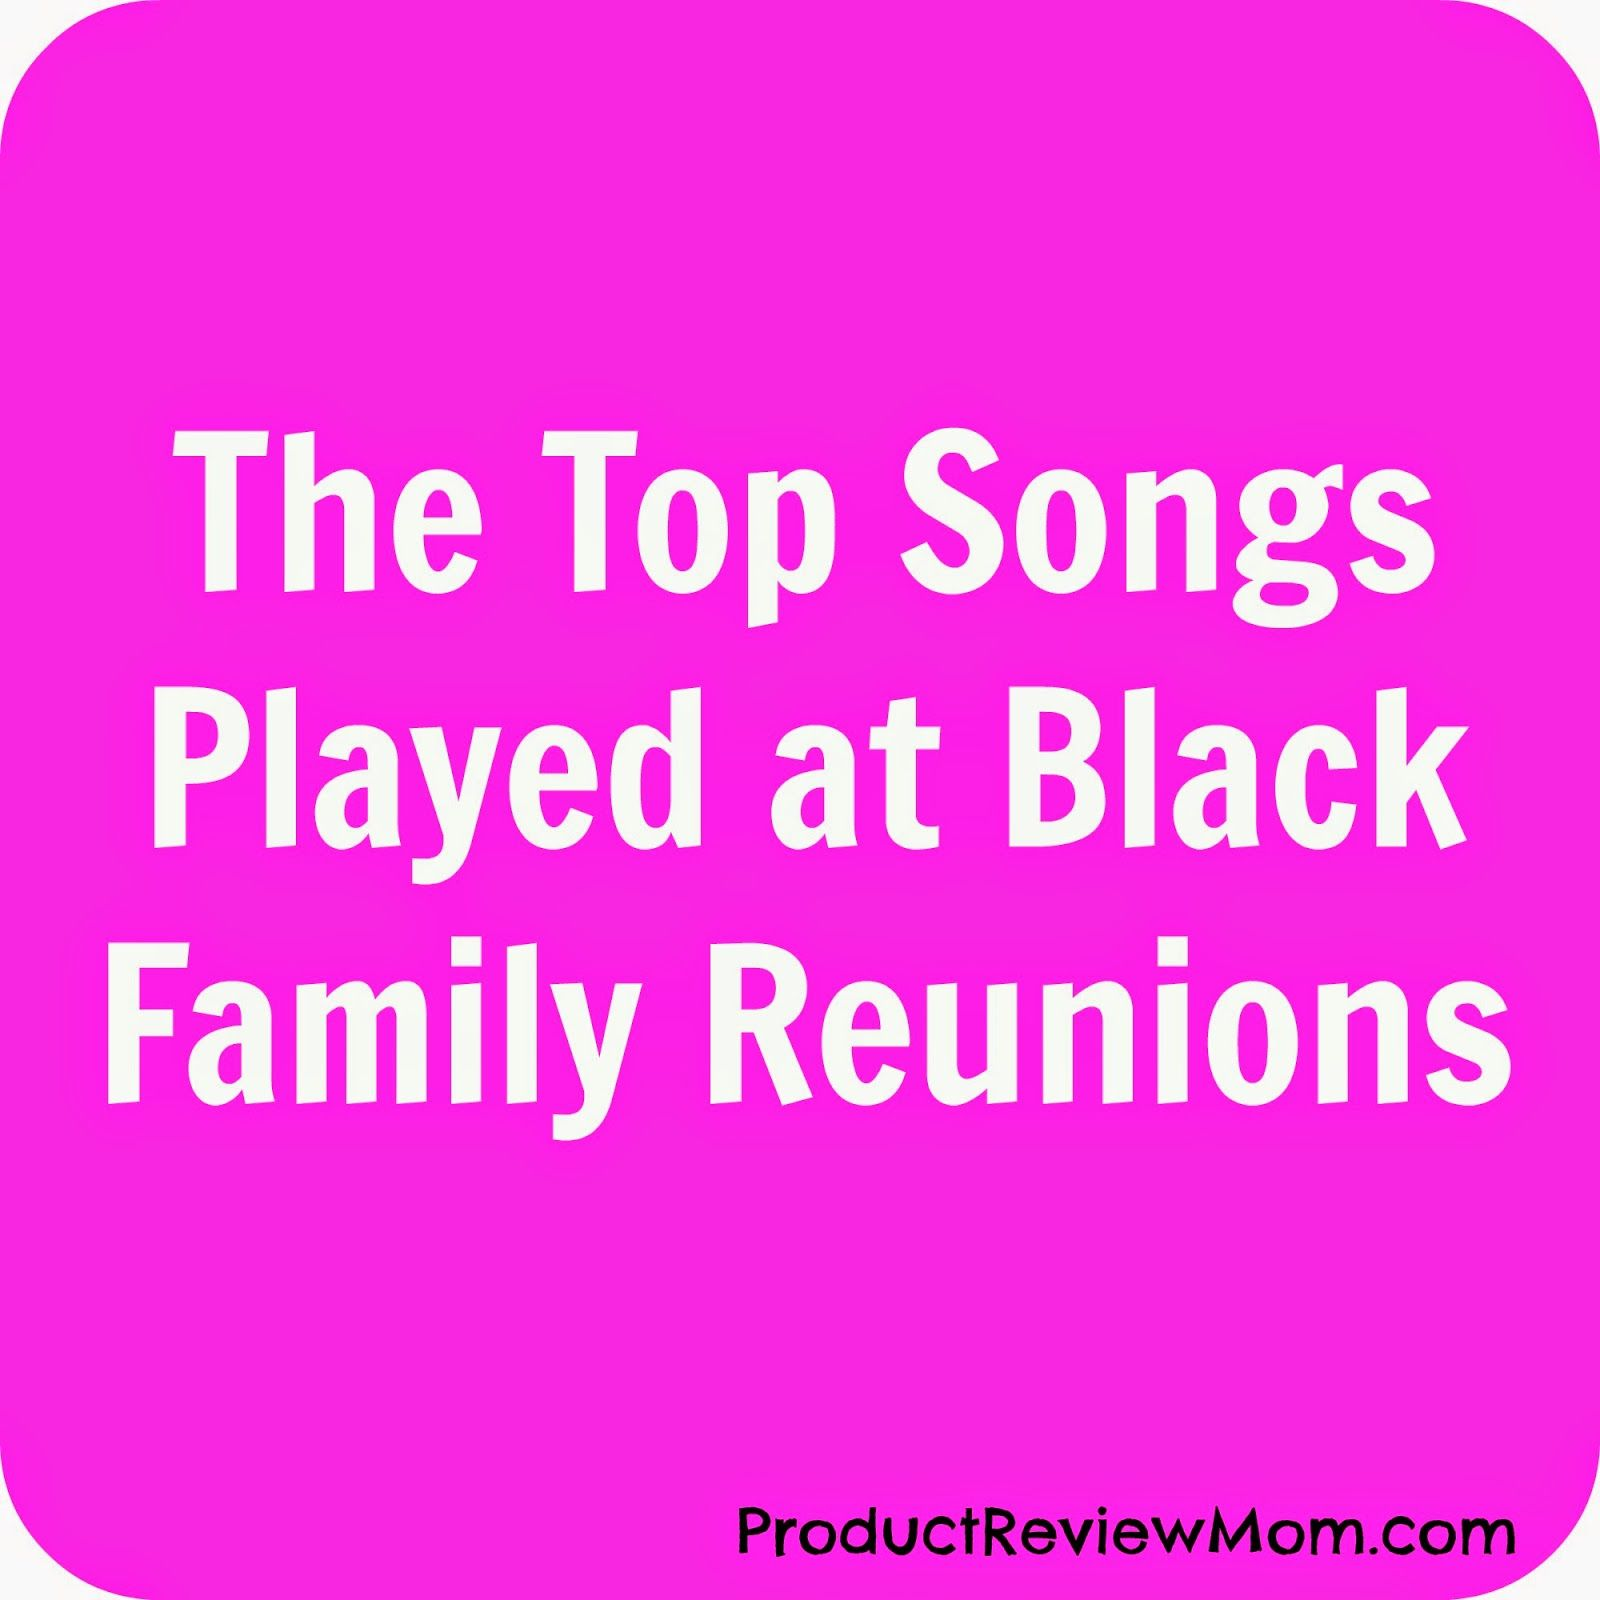 The Top Songs Played at Black Family Reunions via